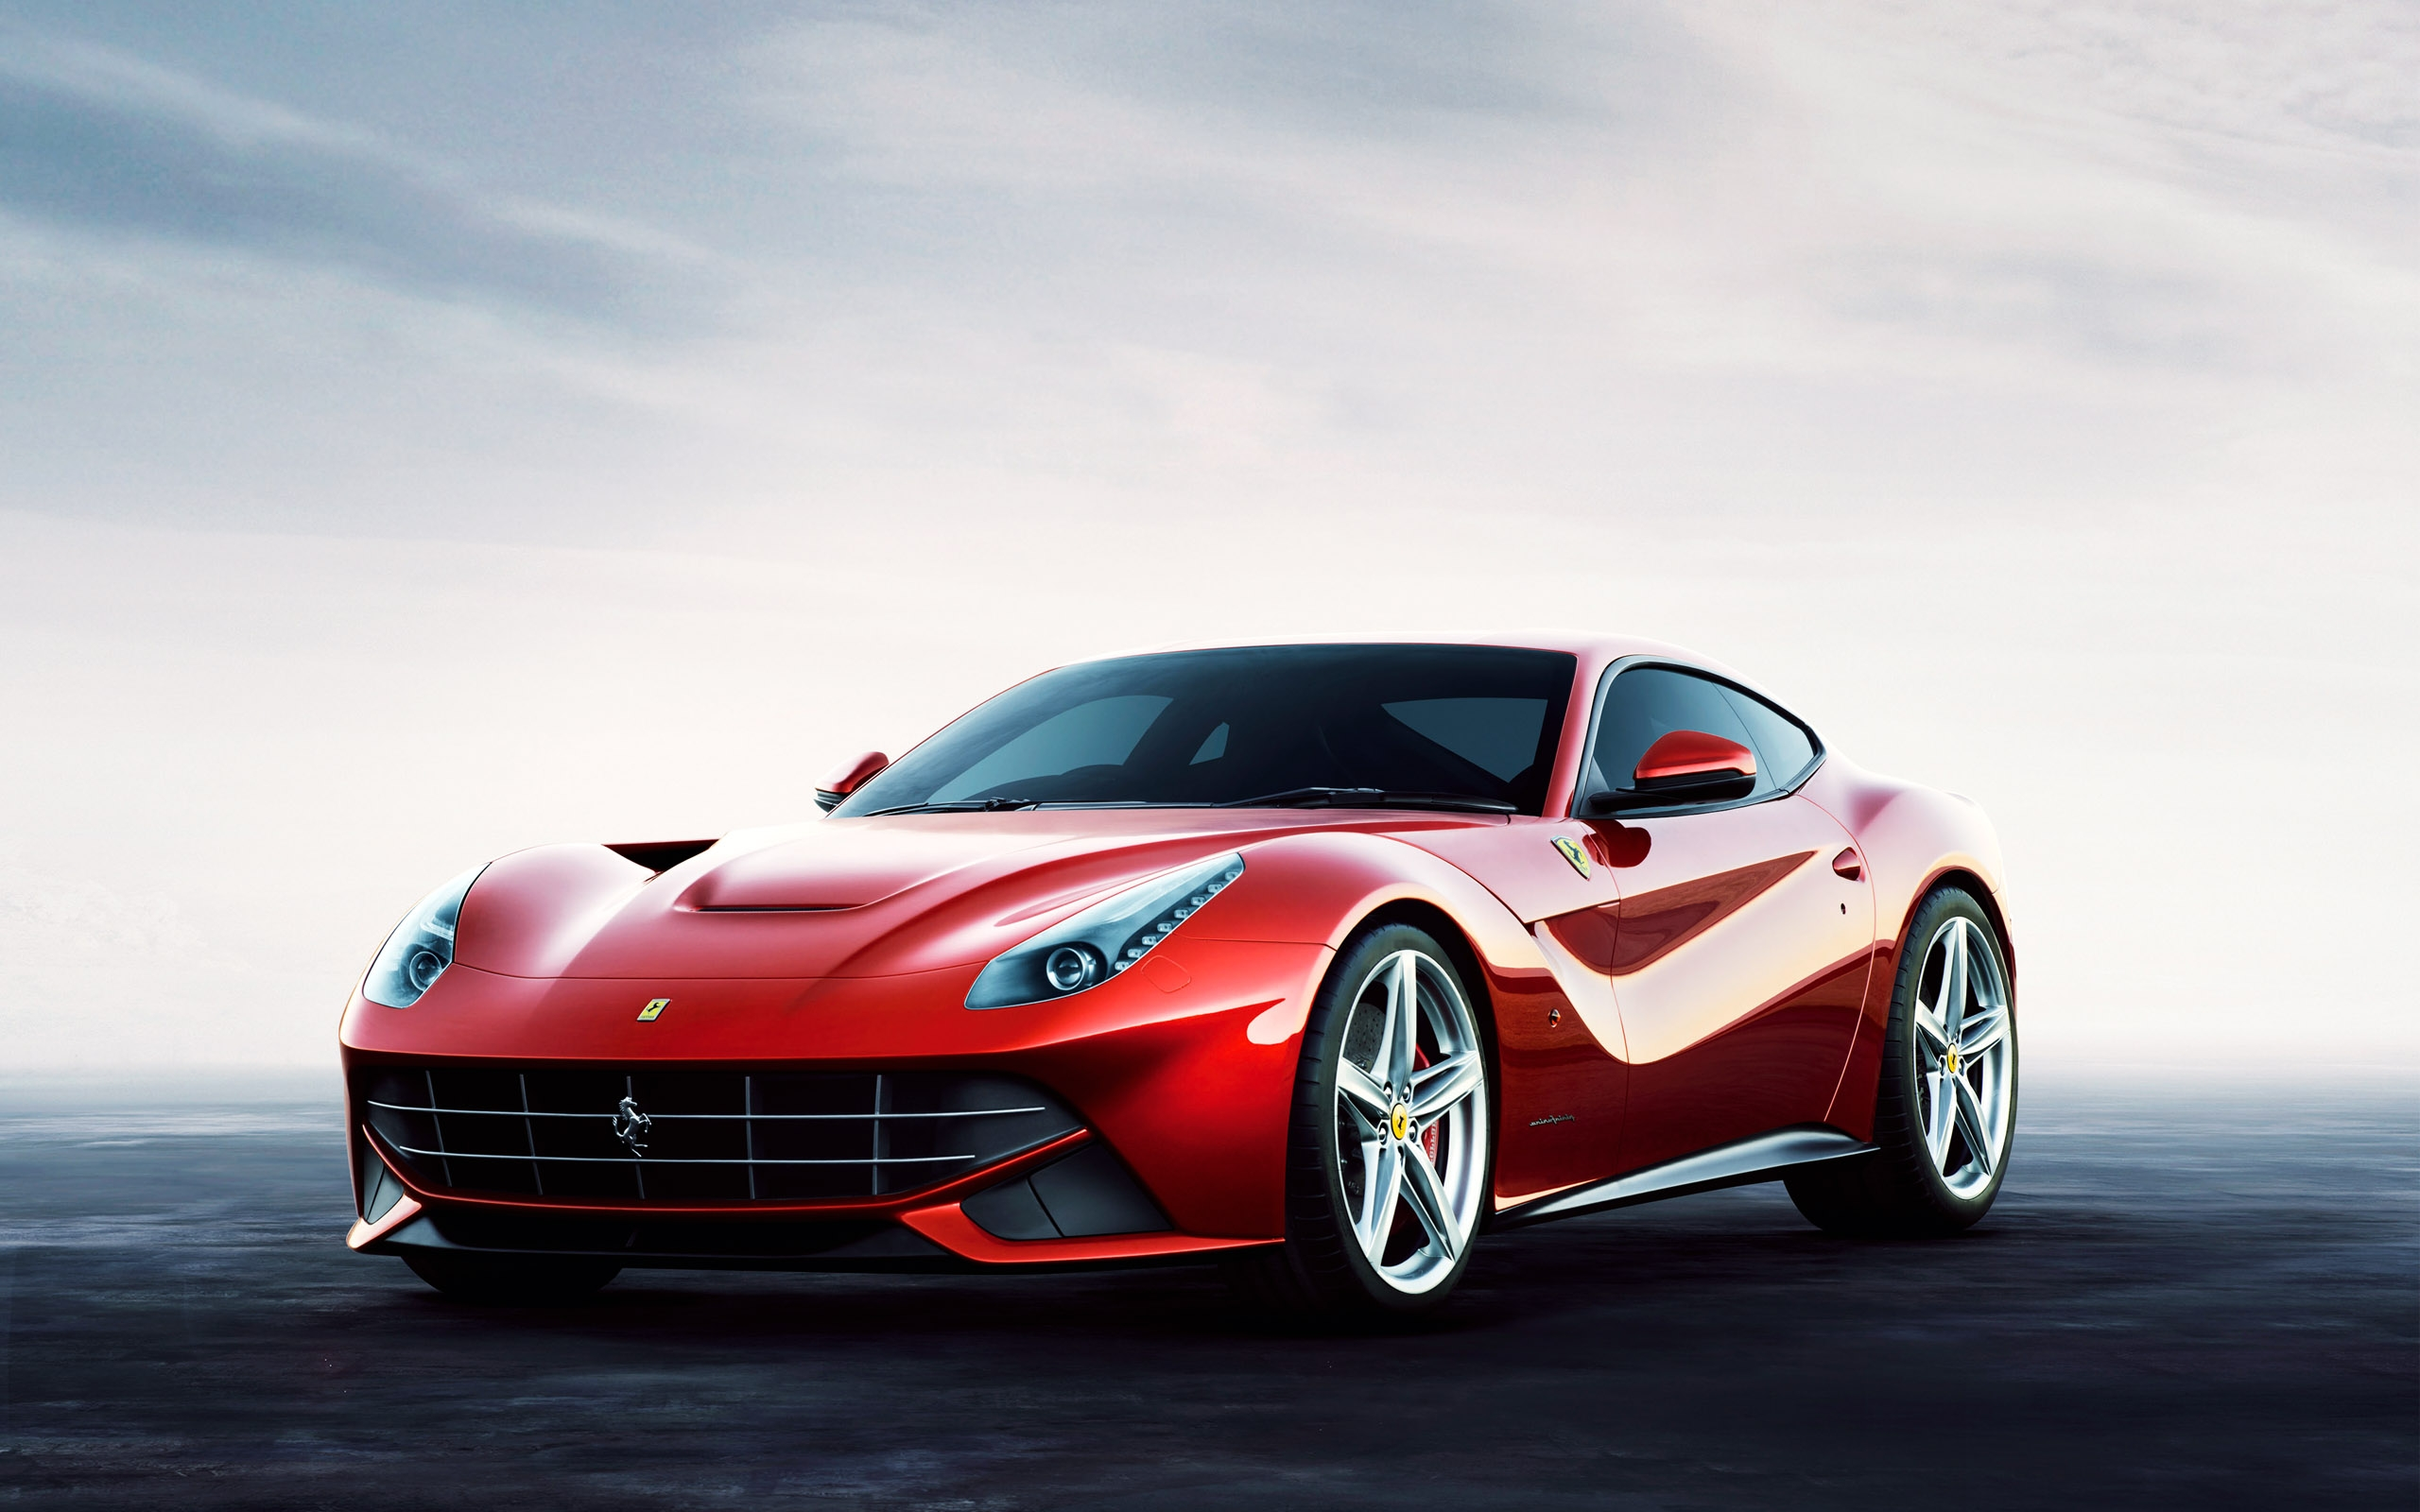 2013 Ferrari F12 Berlinetta Wallpaper Hd